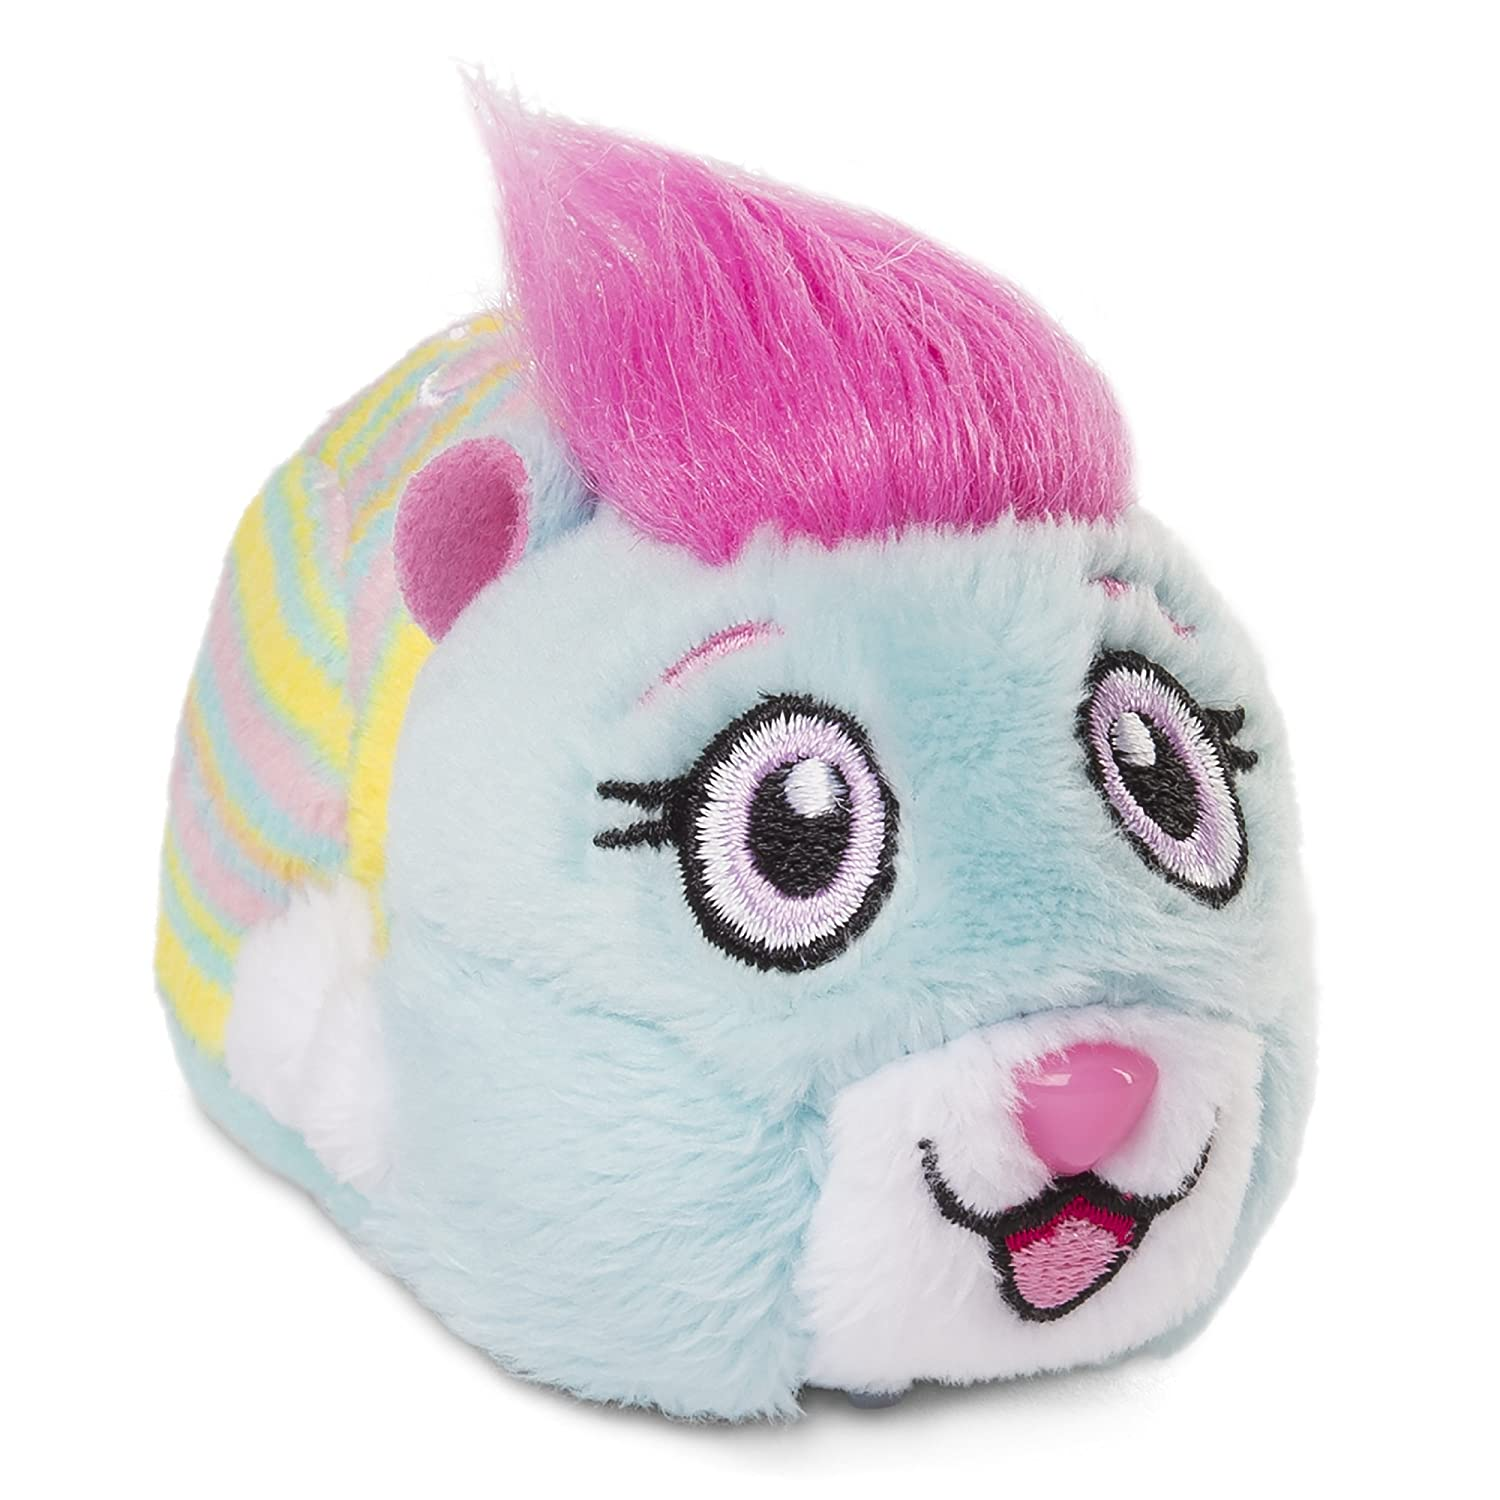 ZhuZhu Pets Pajama Party Merritt 4 Hamster Toy with Sound and Movement